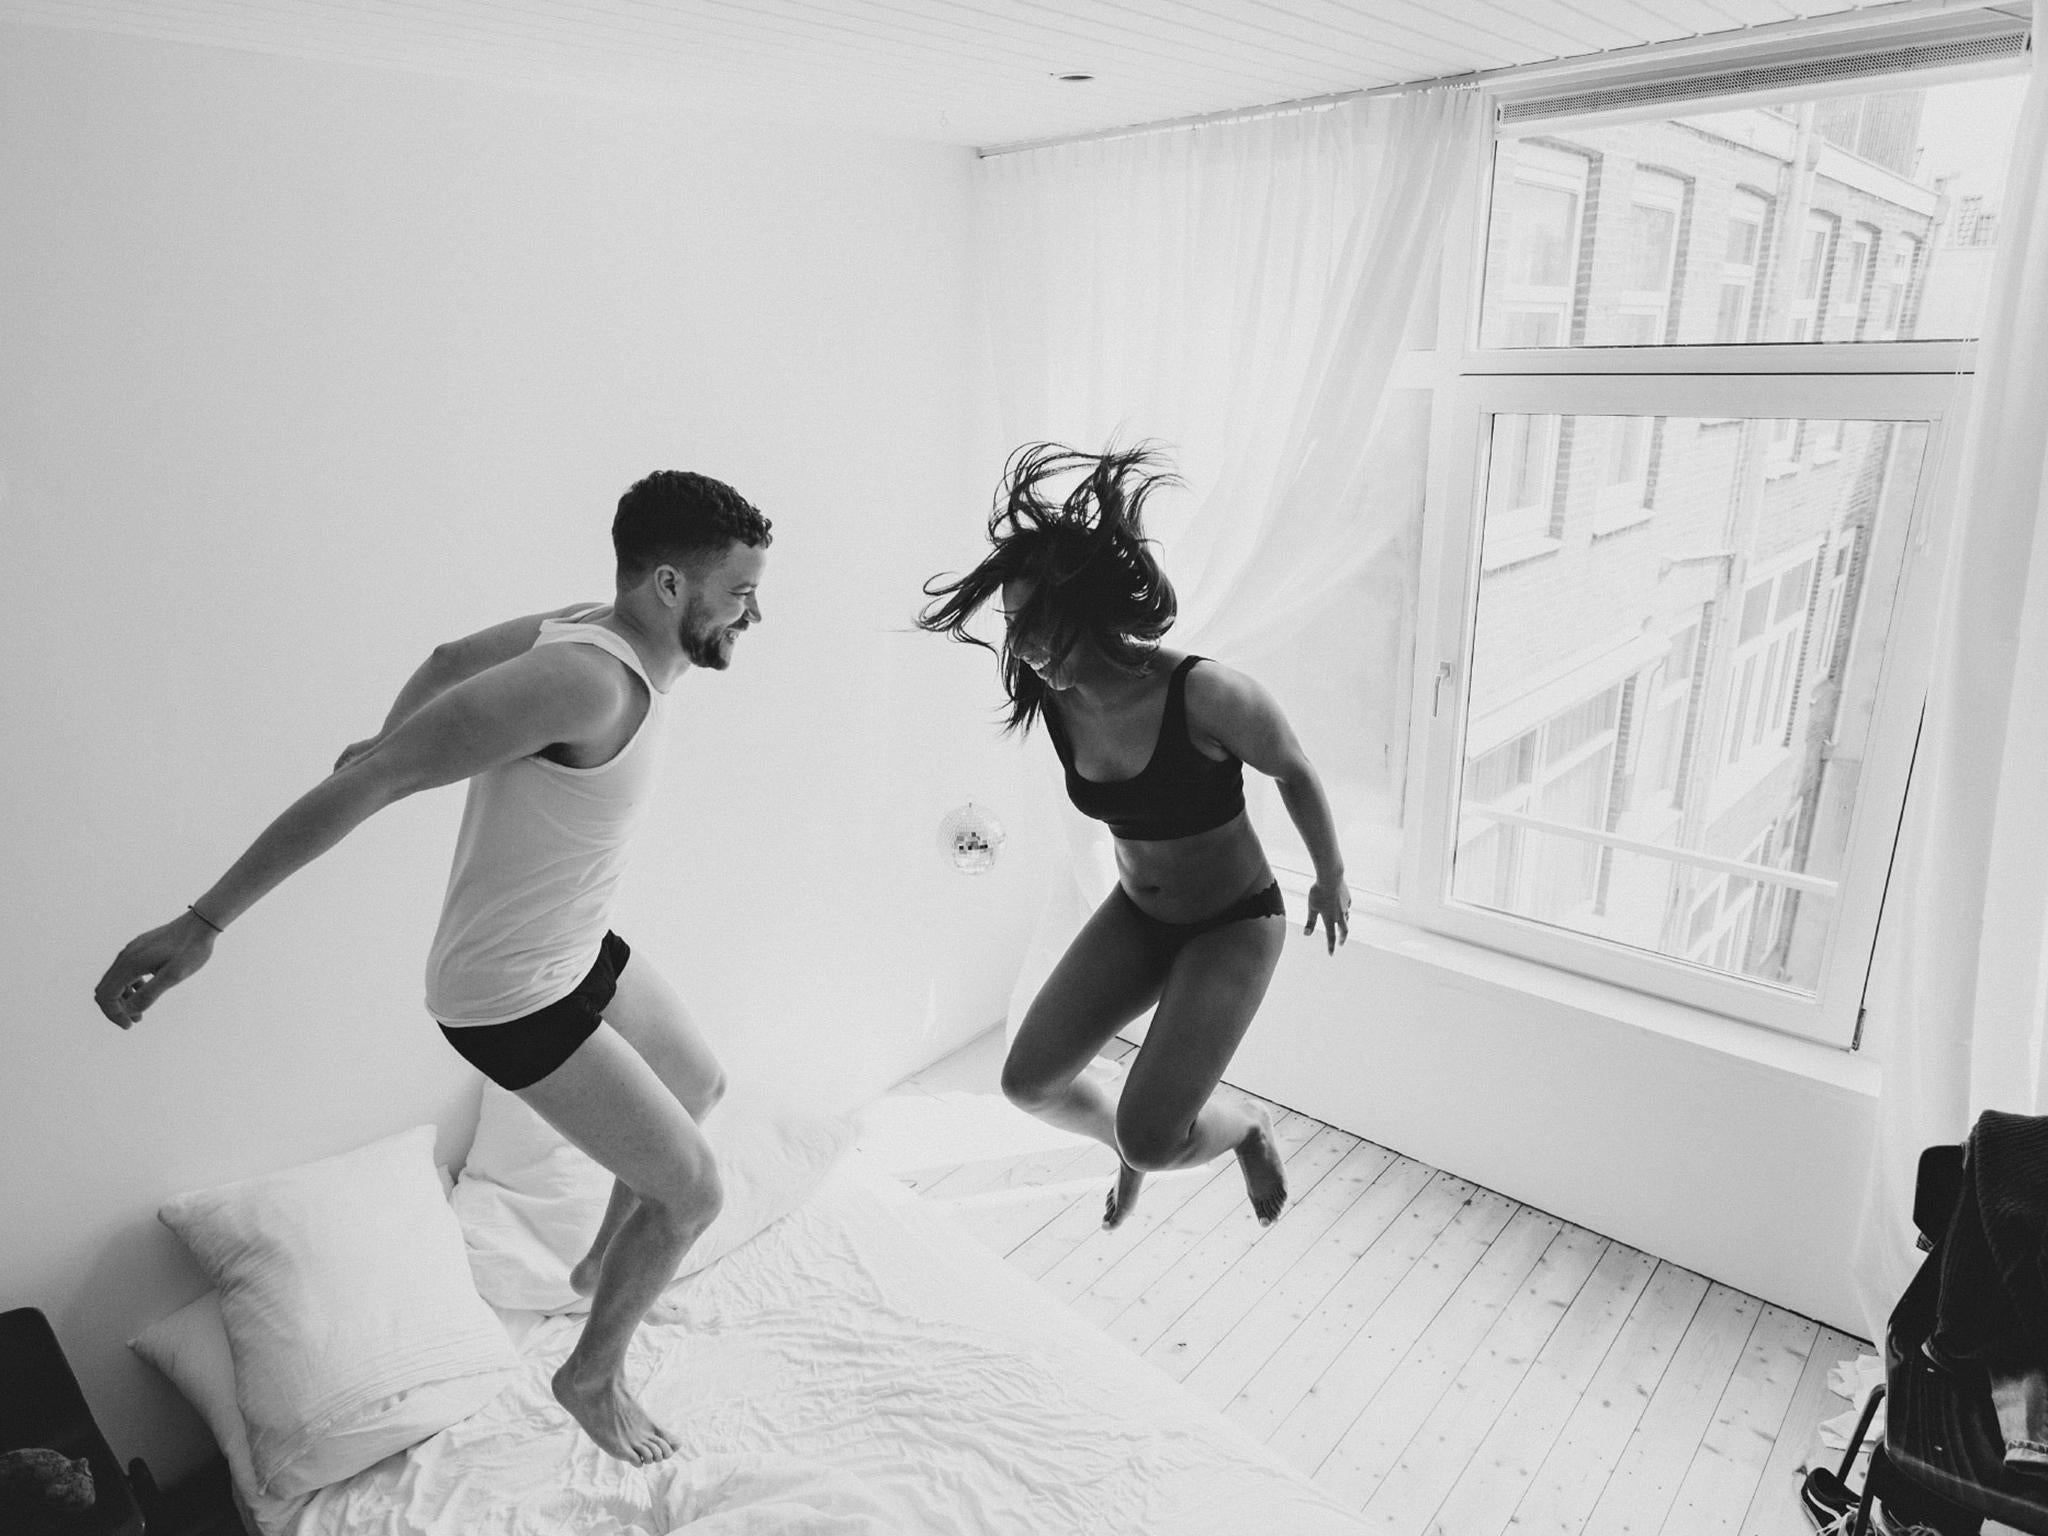 Intimate moments between couples totally in love caught on camera